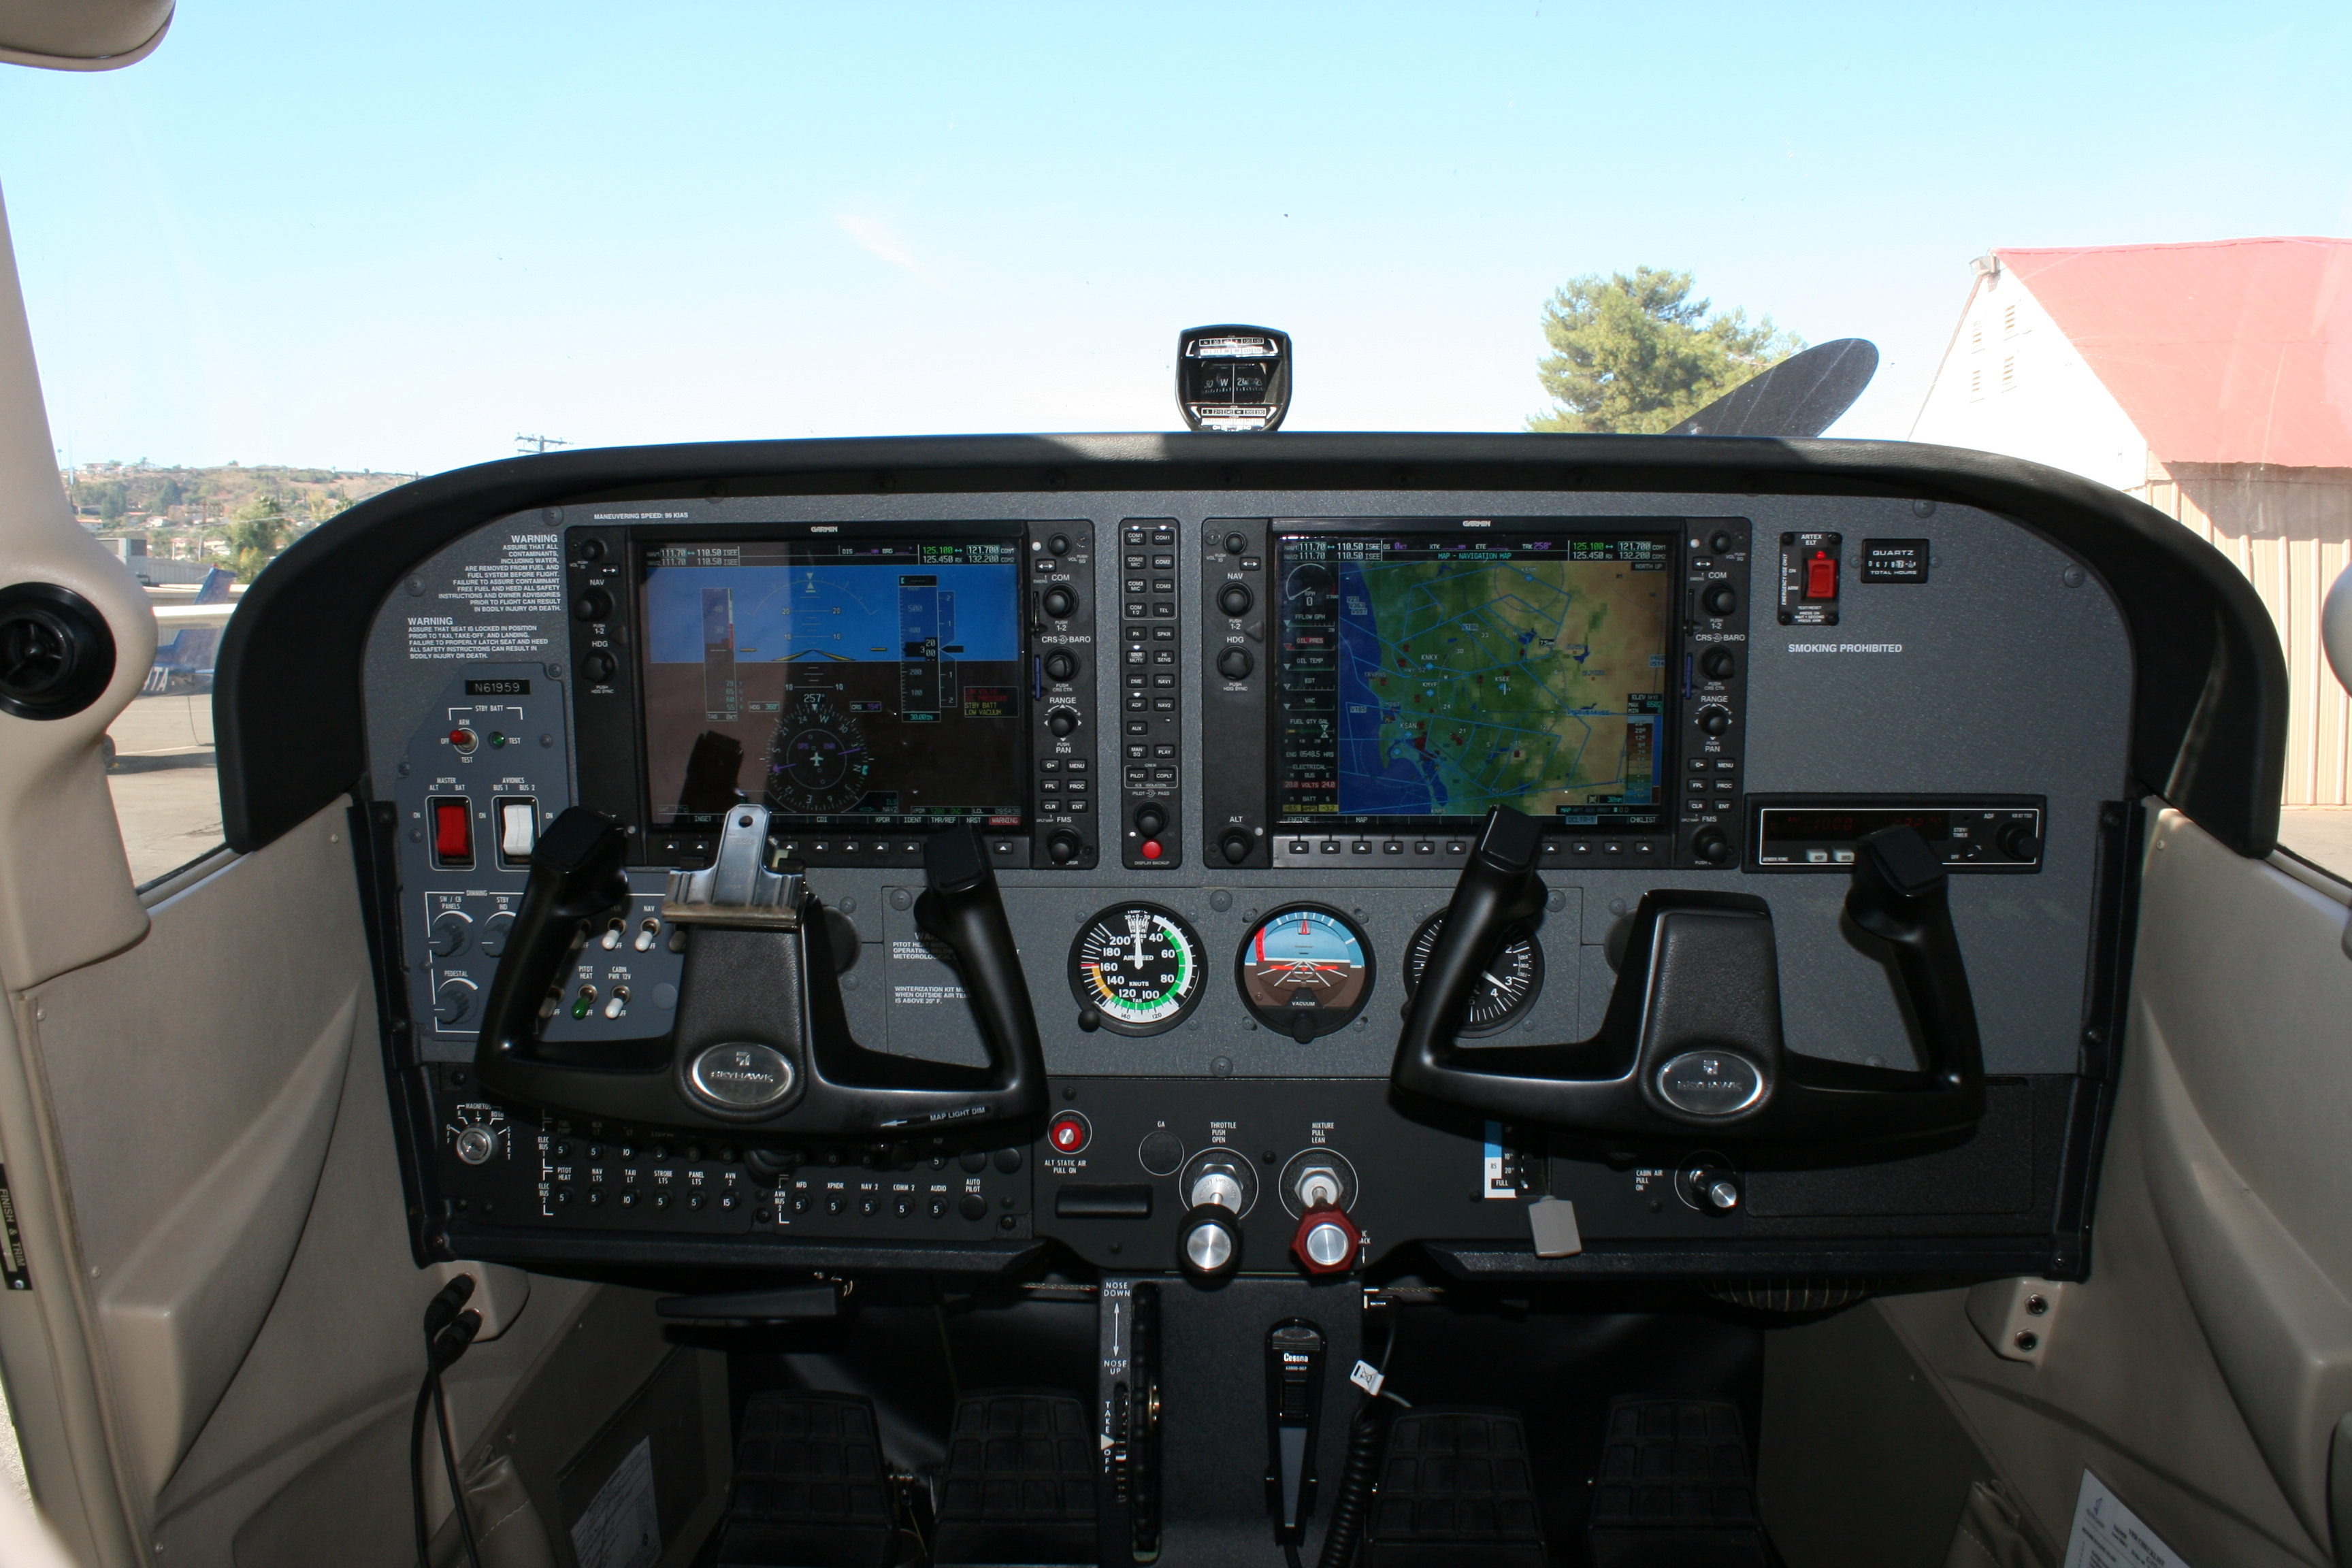 G1000 equipped models also available